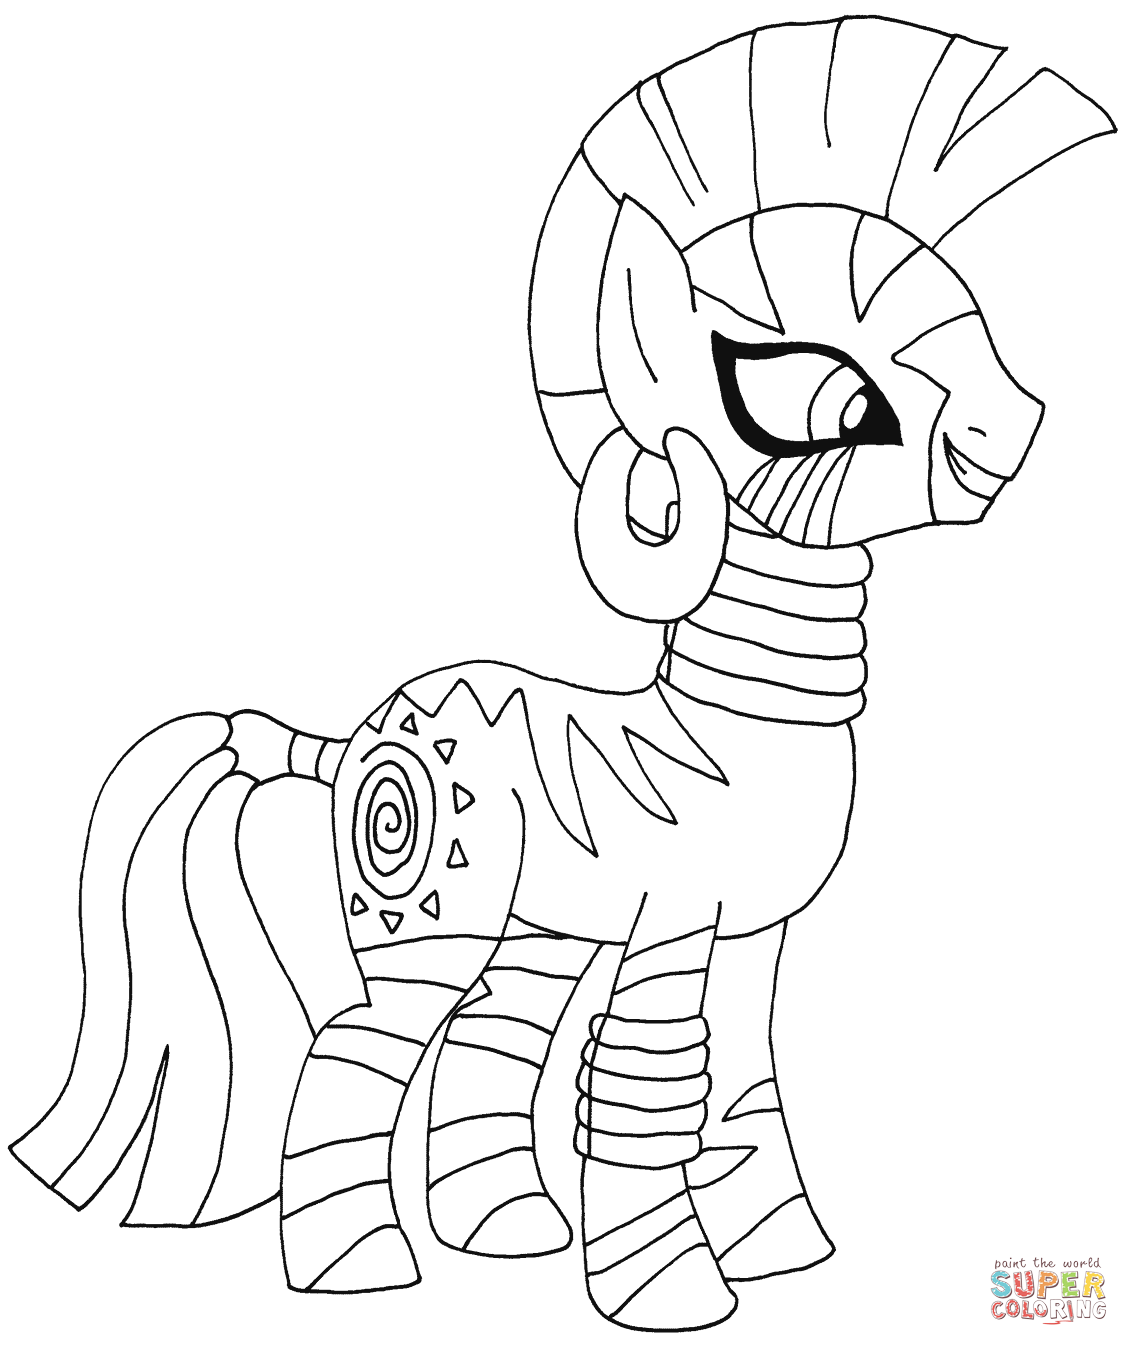 Ausmalbilder My Little Pony Pinkie Pie : My Little Pony Coloring Pages Pony Coloring Pages Mlp Coloring Pages